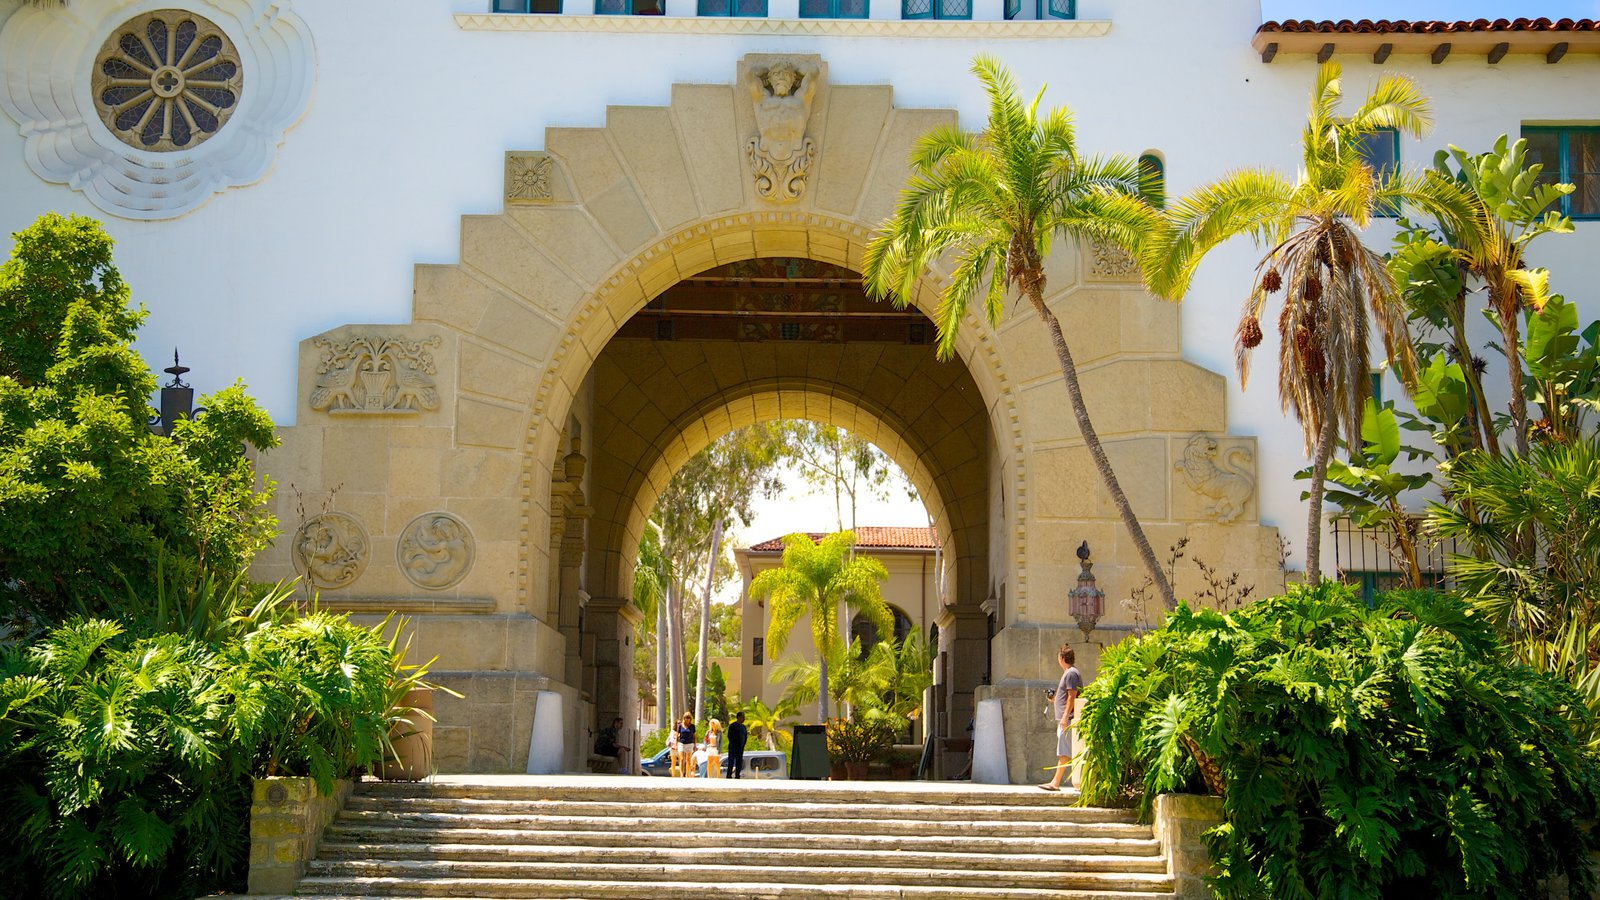 Santa Barbara County Courthouse Pictures: View Photos & Images of ...